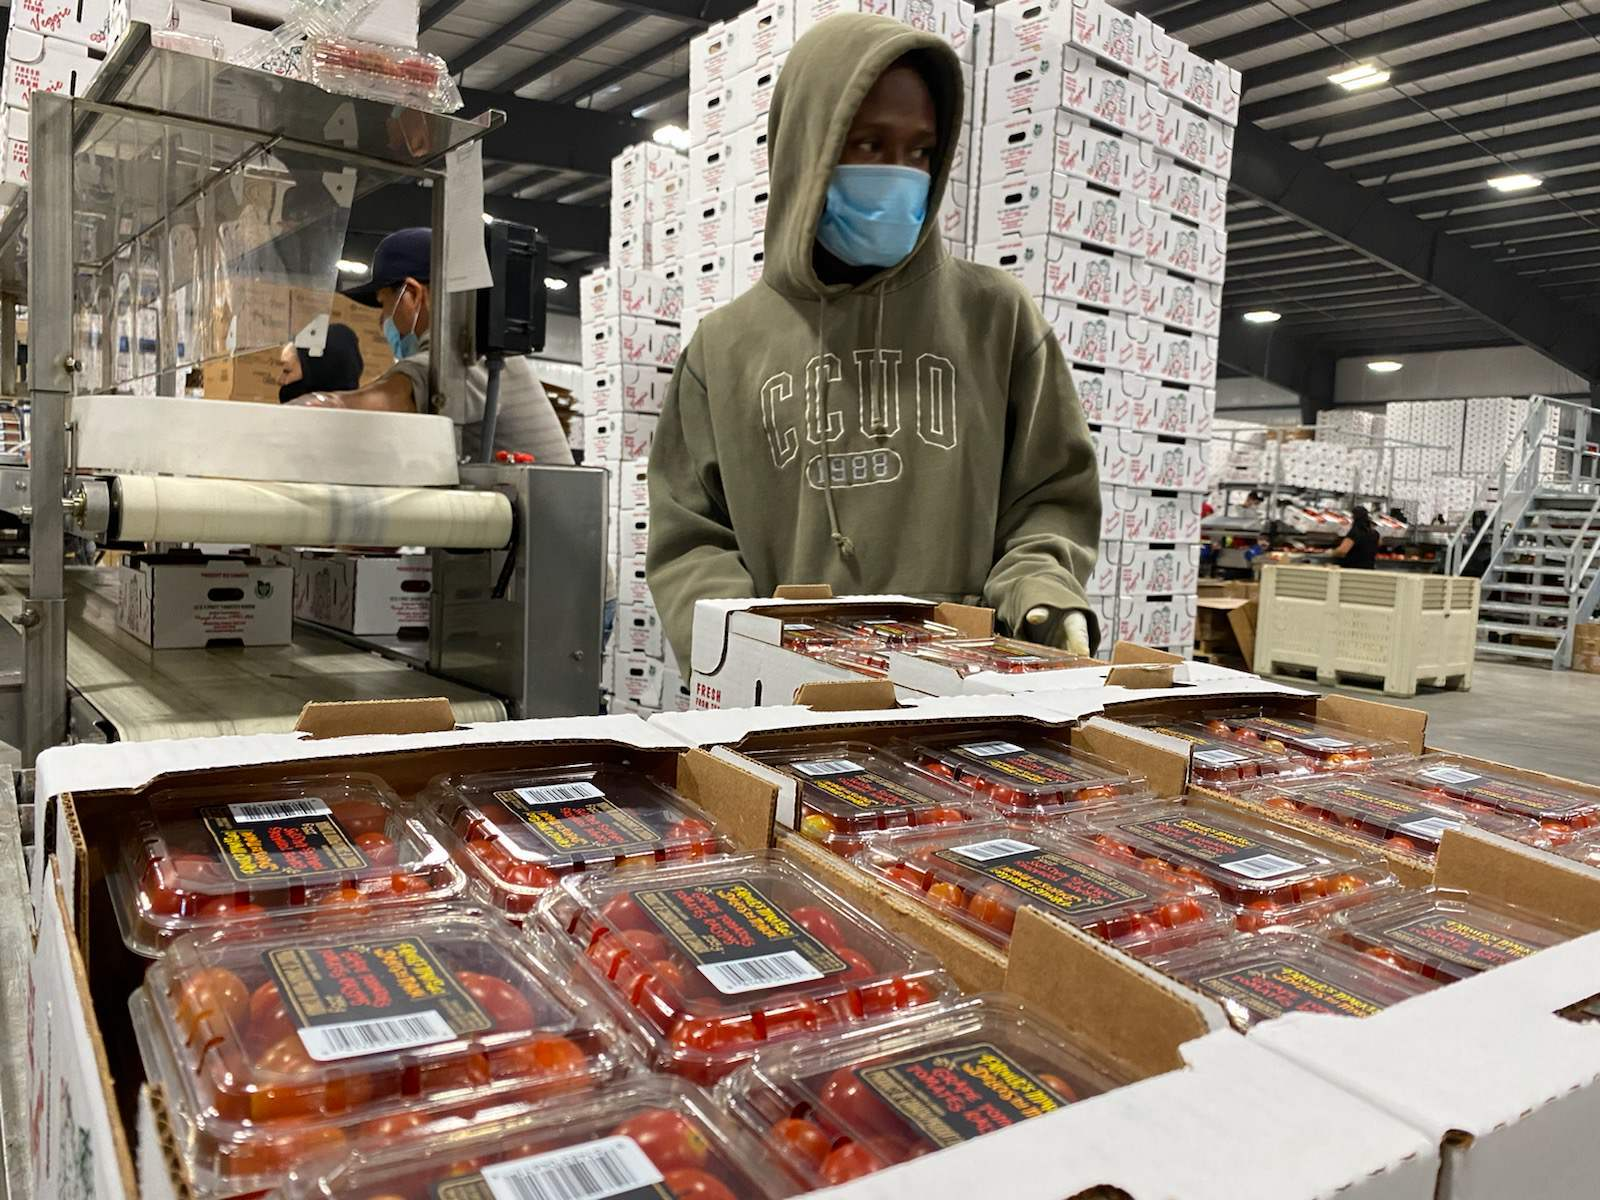 Procyk Farms Ltd. employs 550 migrant workers, mostly from Mexico, and ships 34 million kilograms of tomatoes and other produce across North America each year. (Virginia Smart/CBC)